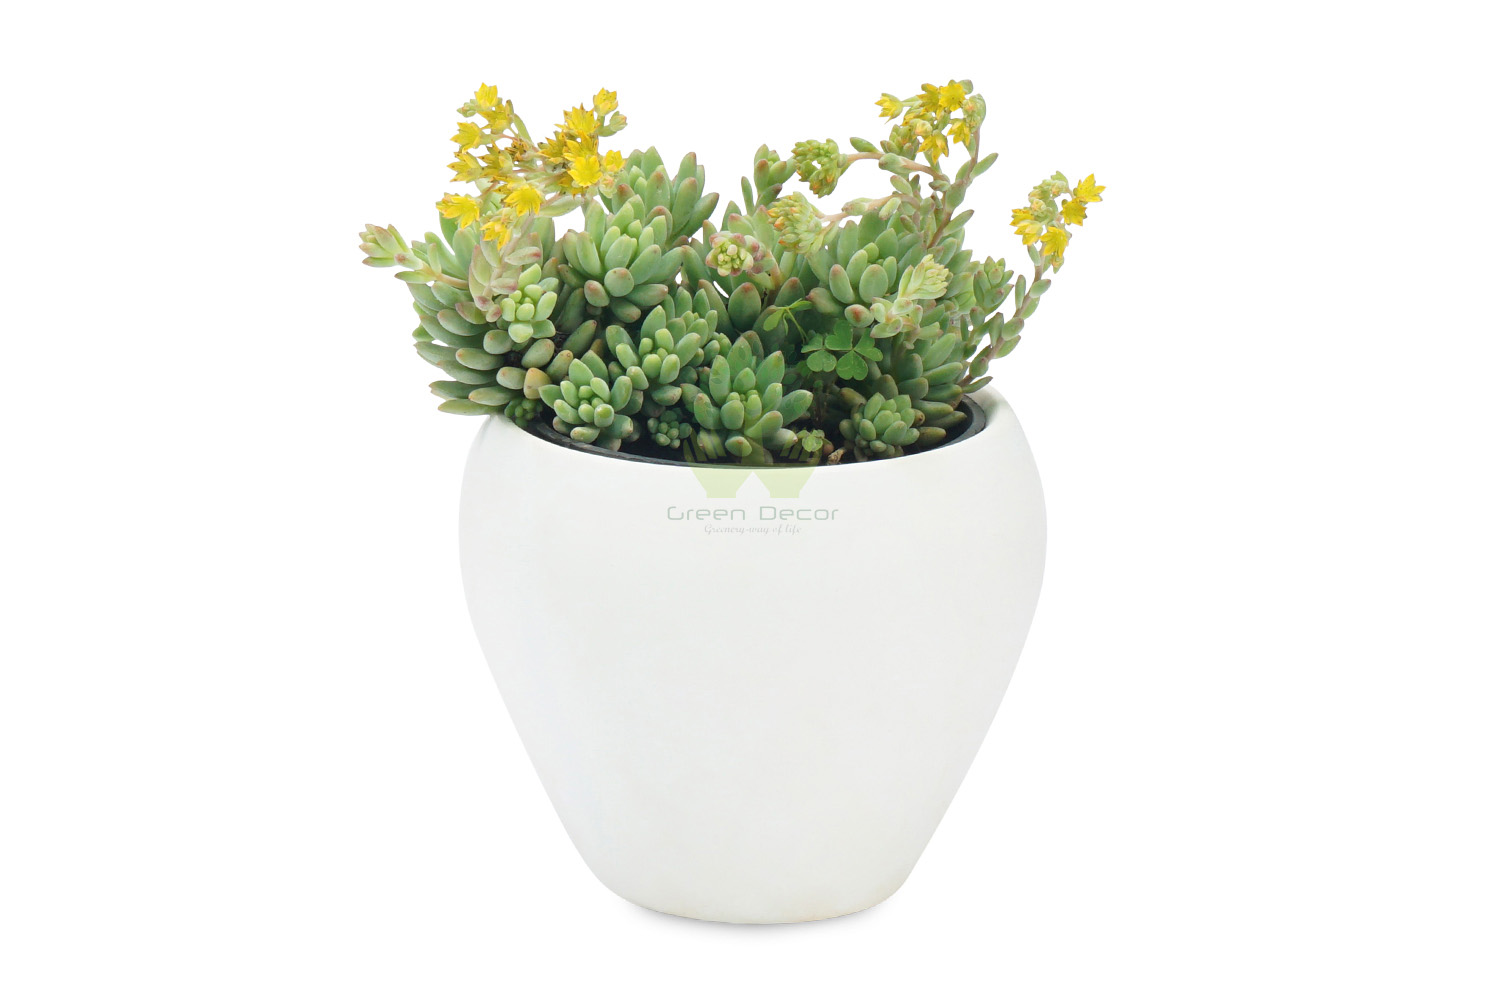 Buy Sedum Angelina Plants , White Pots and seeds in Delhi NCR by the best online nursery shop Greendecor.